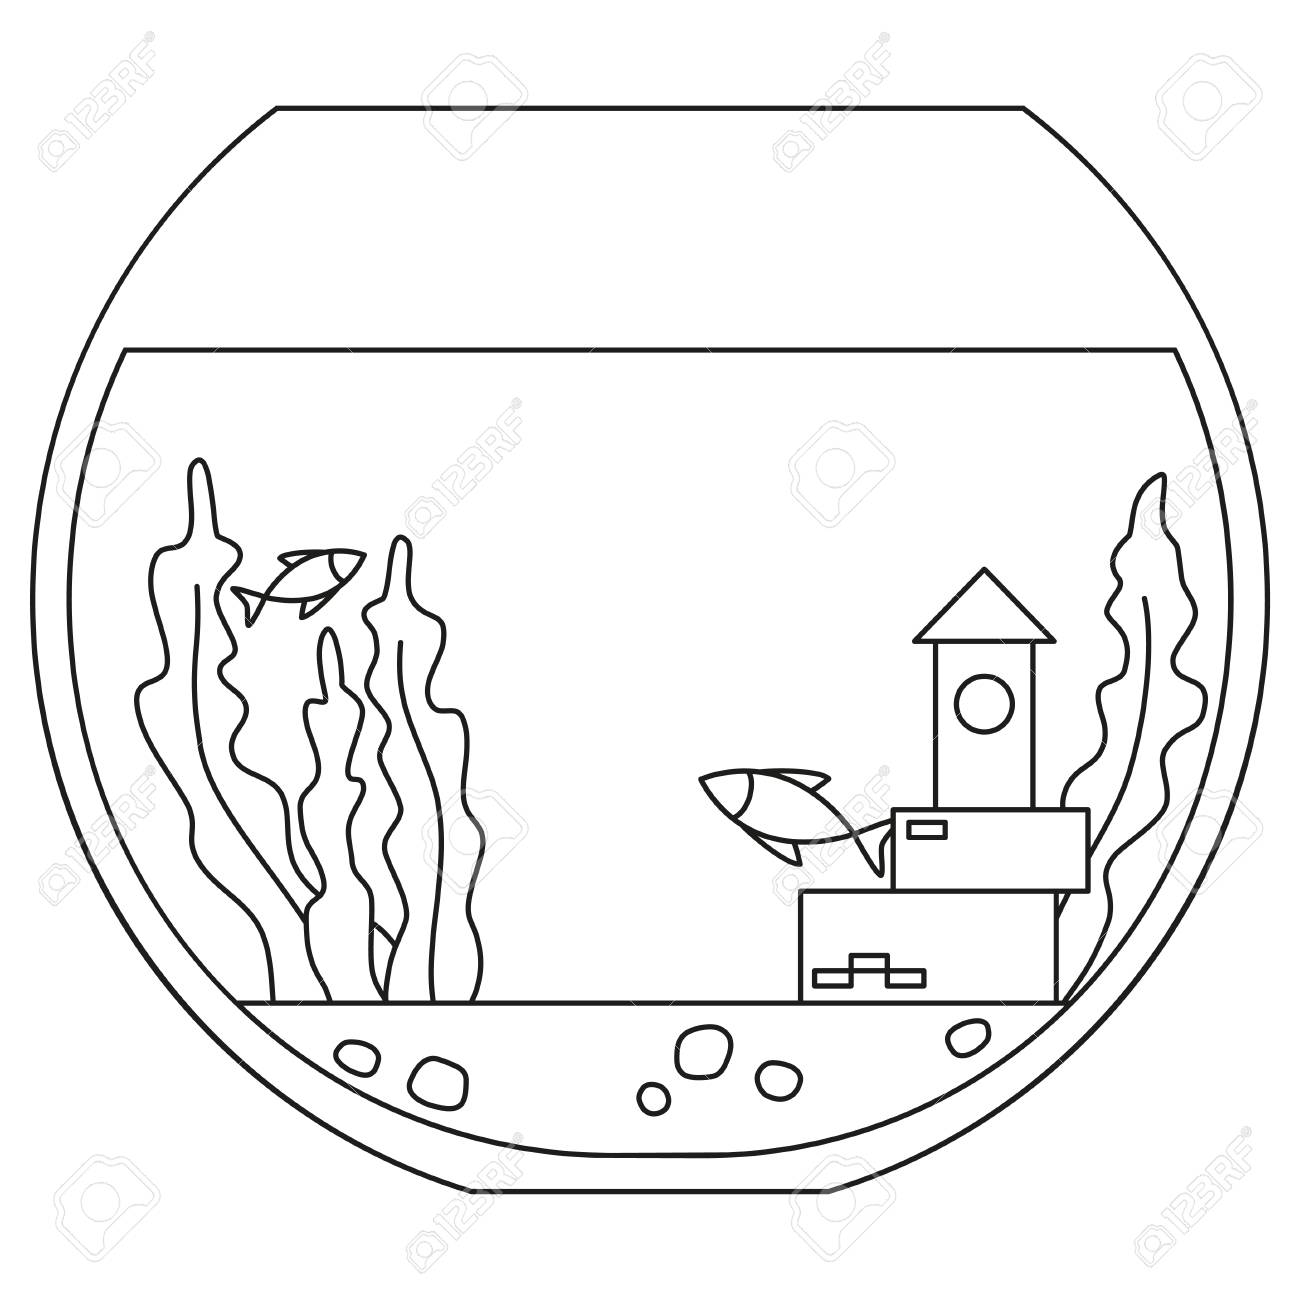 Line Art Black And White Round Fish Aquarium Coloring Page For